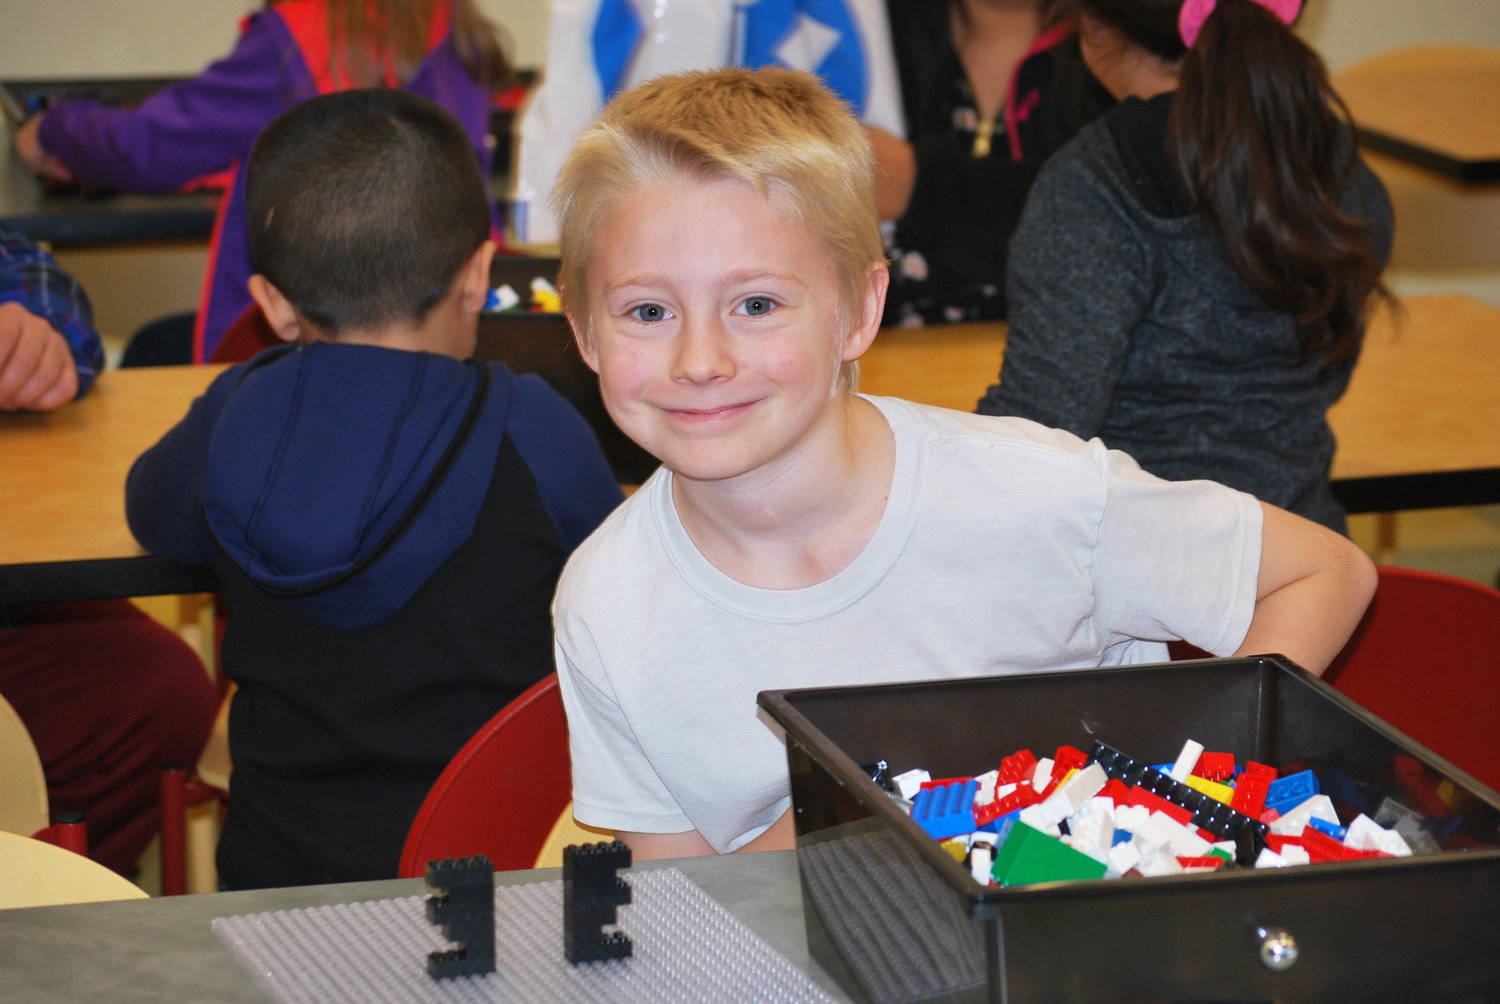 Clay Edgecombe just completed his lego challenge earlier and now he can create anything he wants